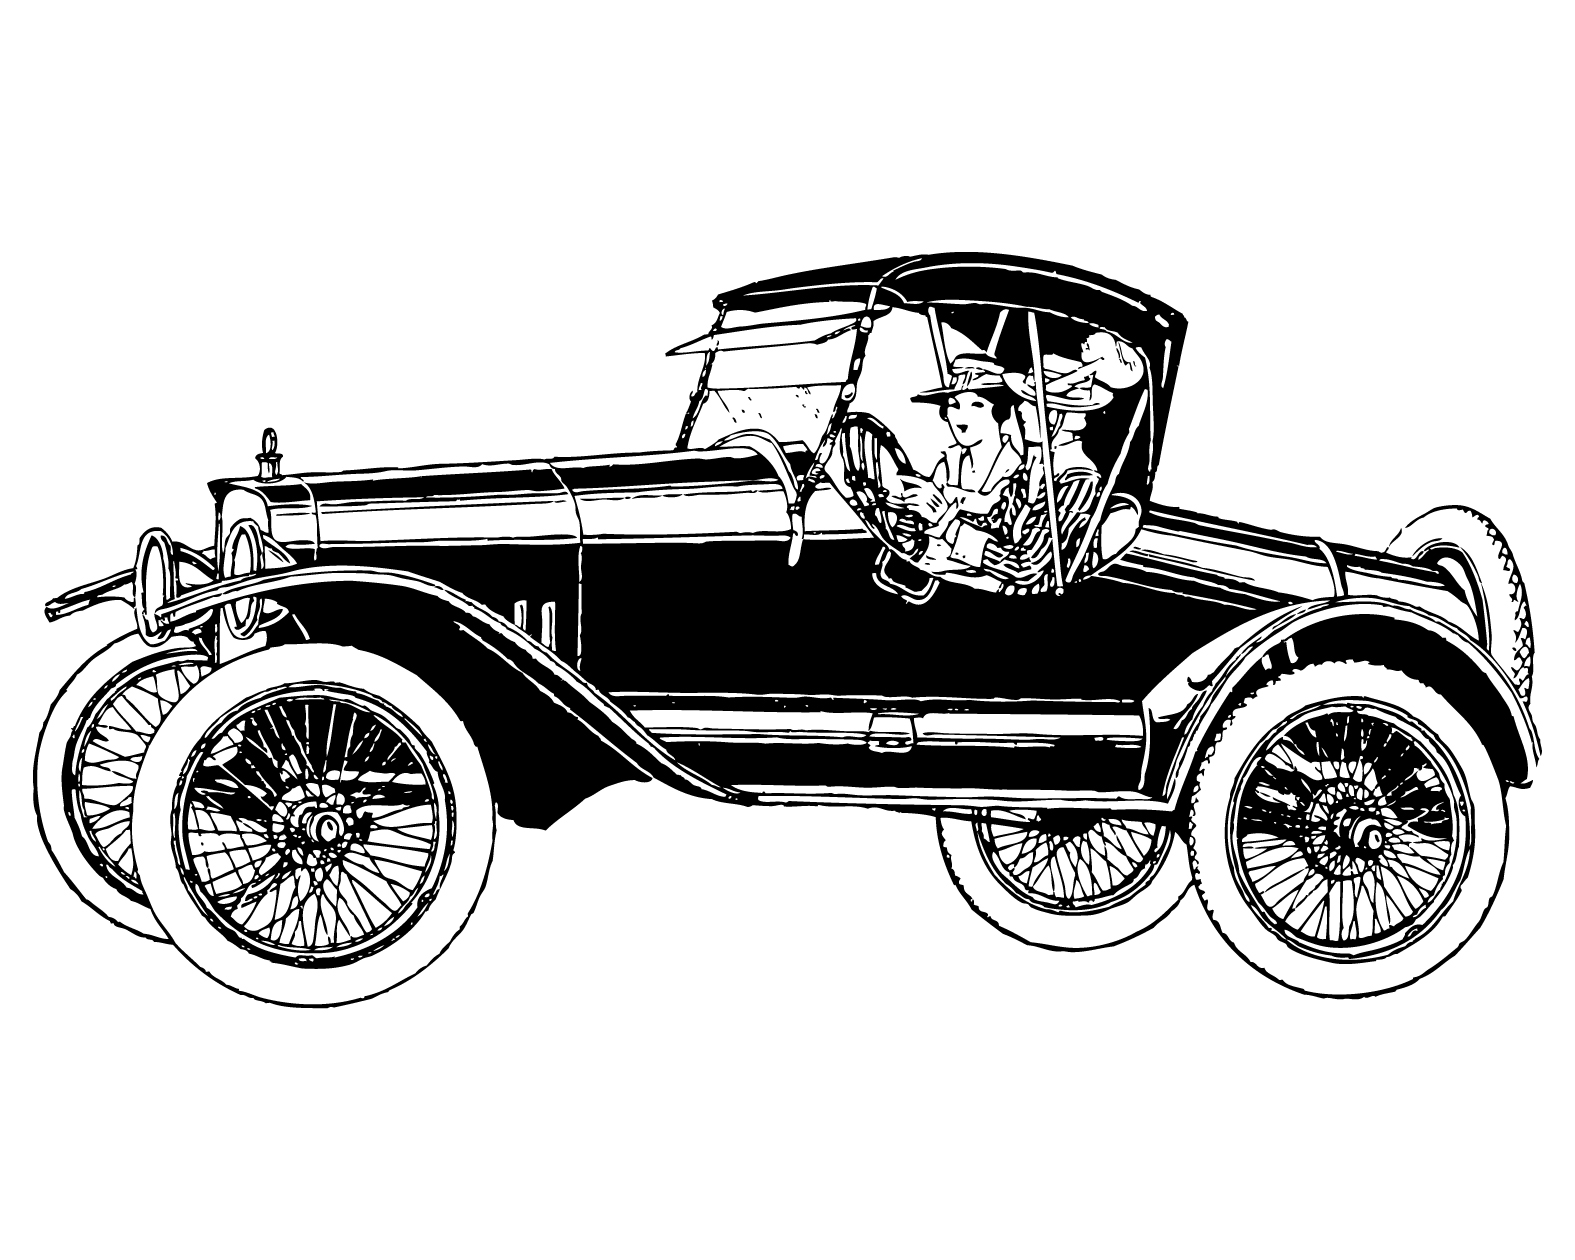 Old car car clipart jpg royalty free stock 1920s old car clipart - ClipartFest jpg royalty free stock